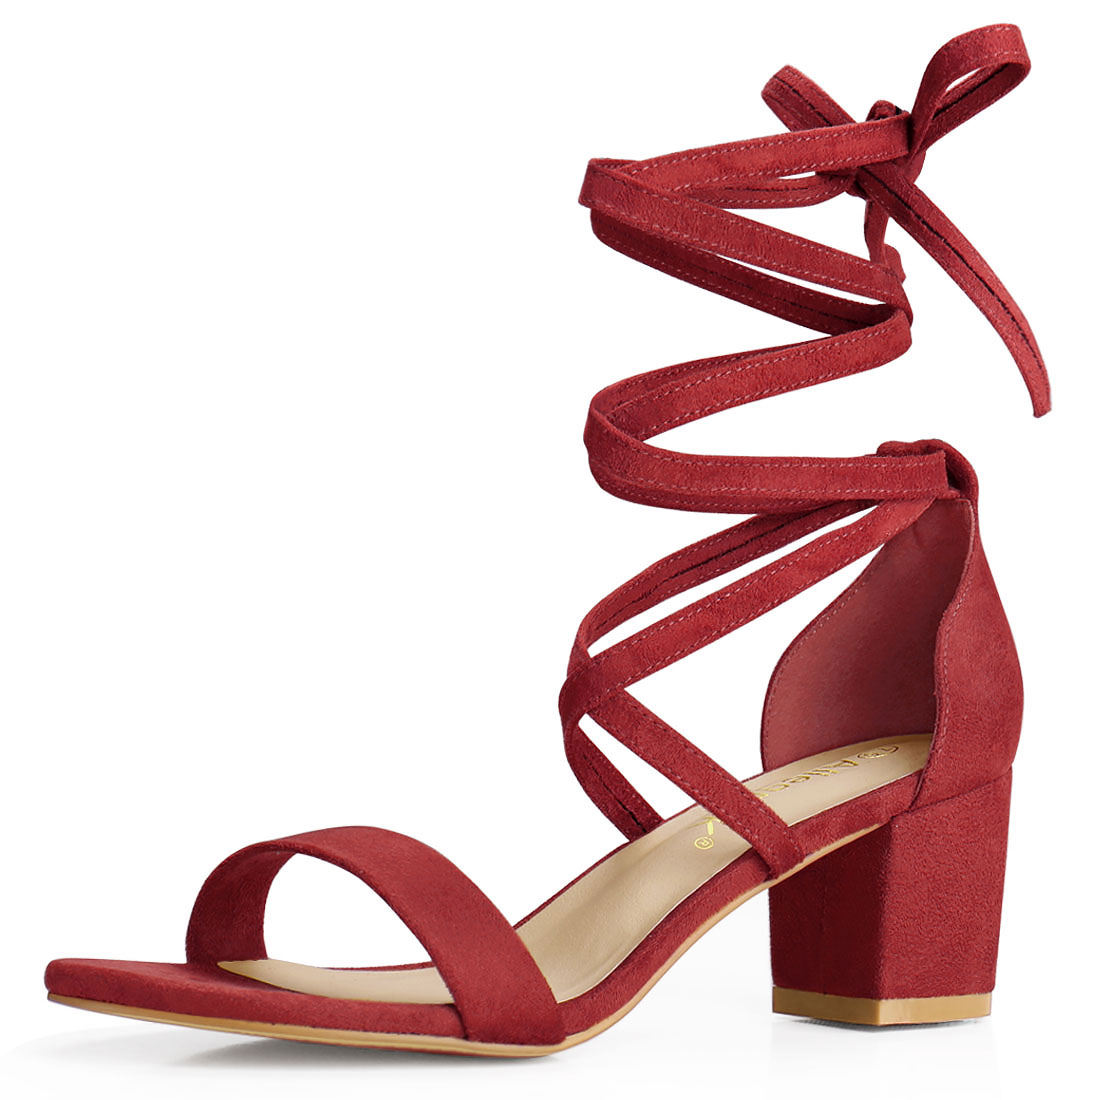 Allegra K Women's Lace Up Mid Chunky Heeled Sandals Red-Faux Suede US 5